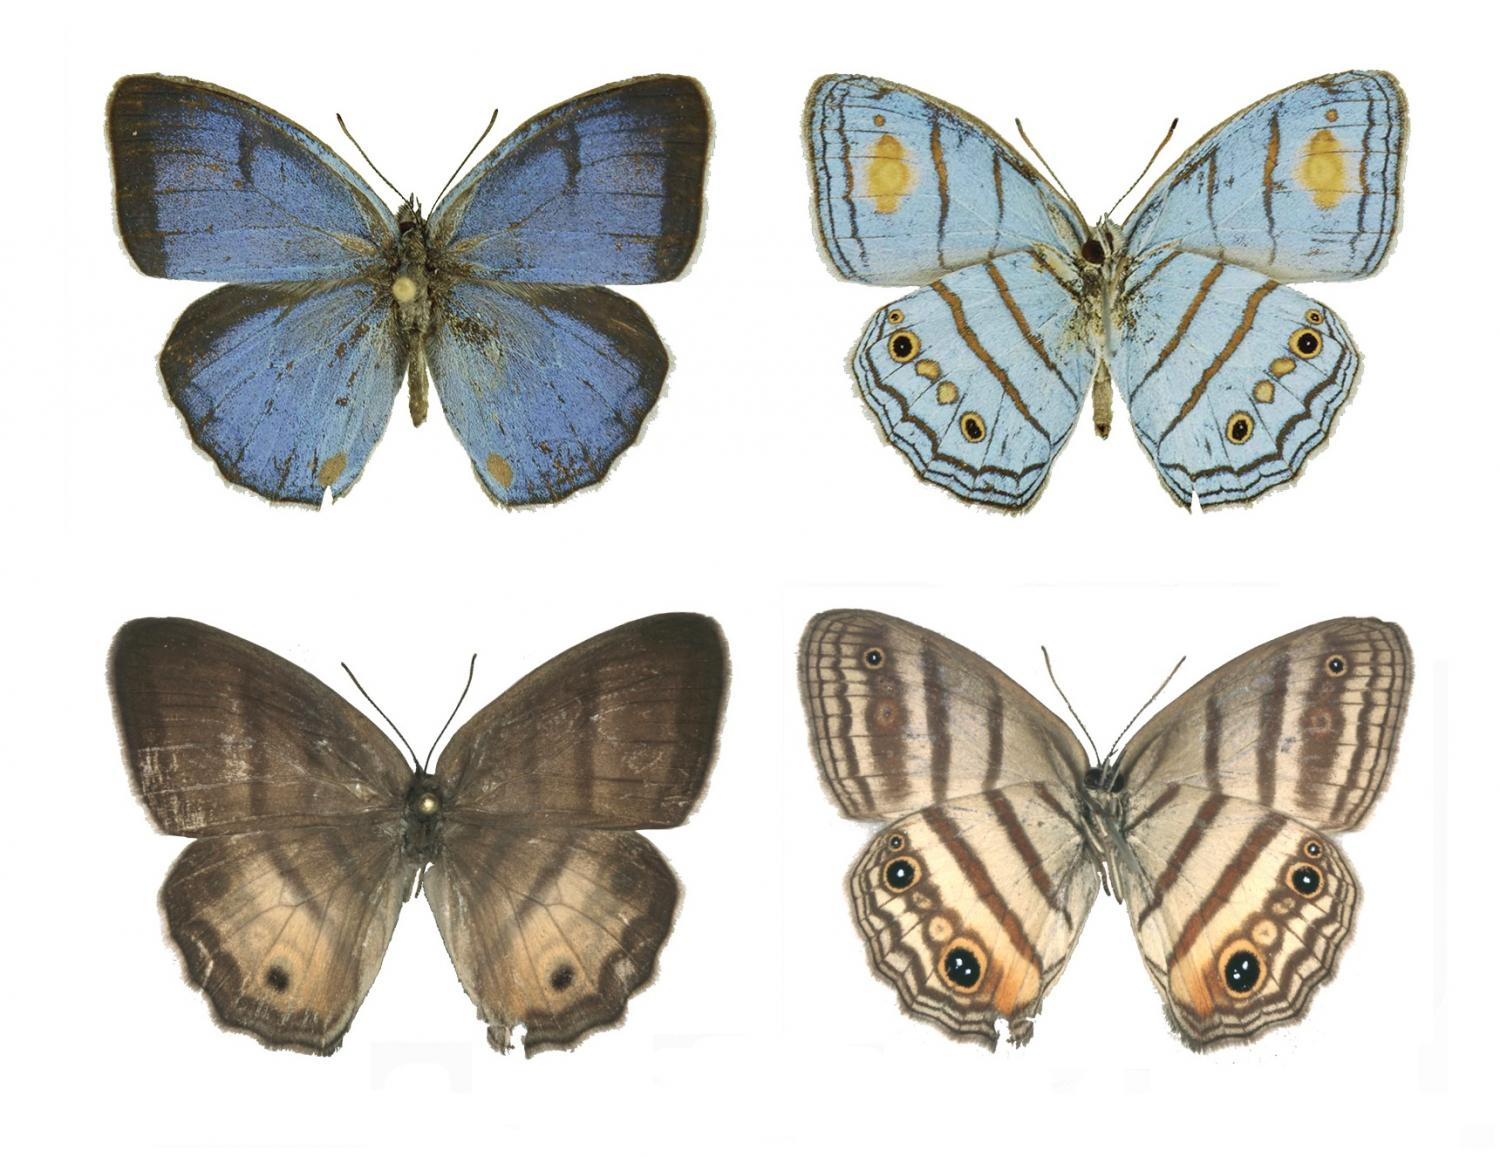 The iridescent blue male sunburst cerulean-satyr, Caeruleuptychia helios, top, was not linked with its female counterpart, bottom, until DNA bar codes showed they were the same species. Credit: Florida Museum of Natural History, photo by Shinichi Nakahara